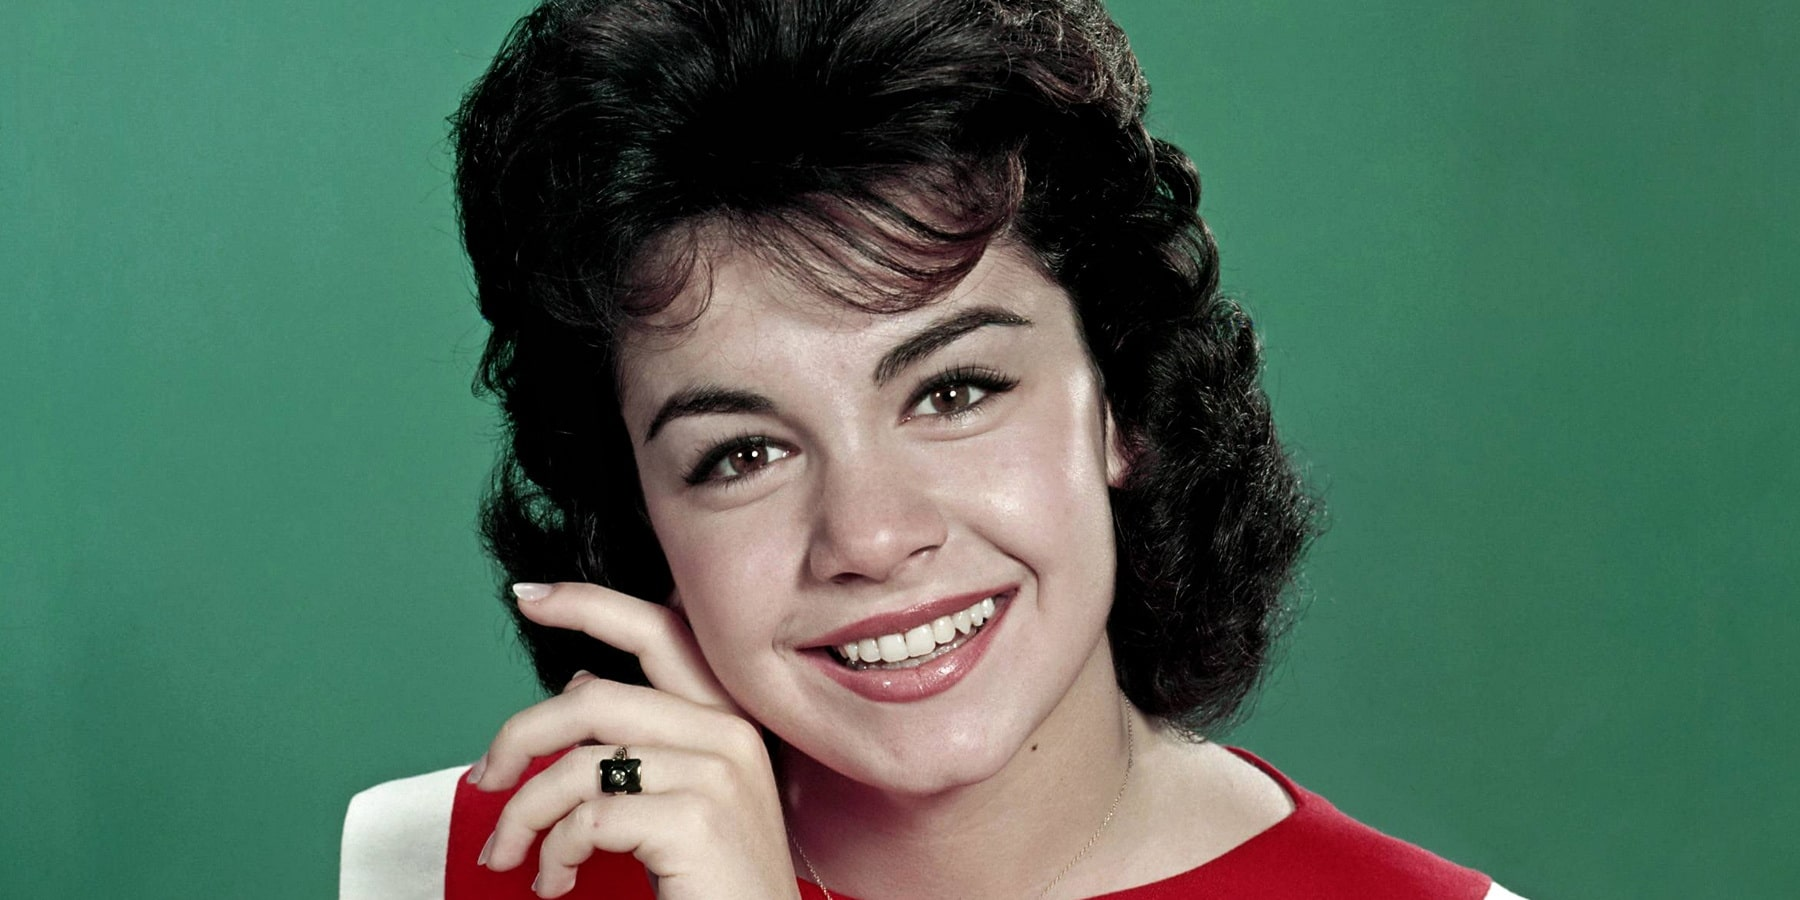 Annette funicello net worth salary income assets in 2018 - Annette frank ...